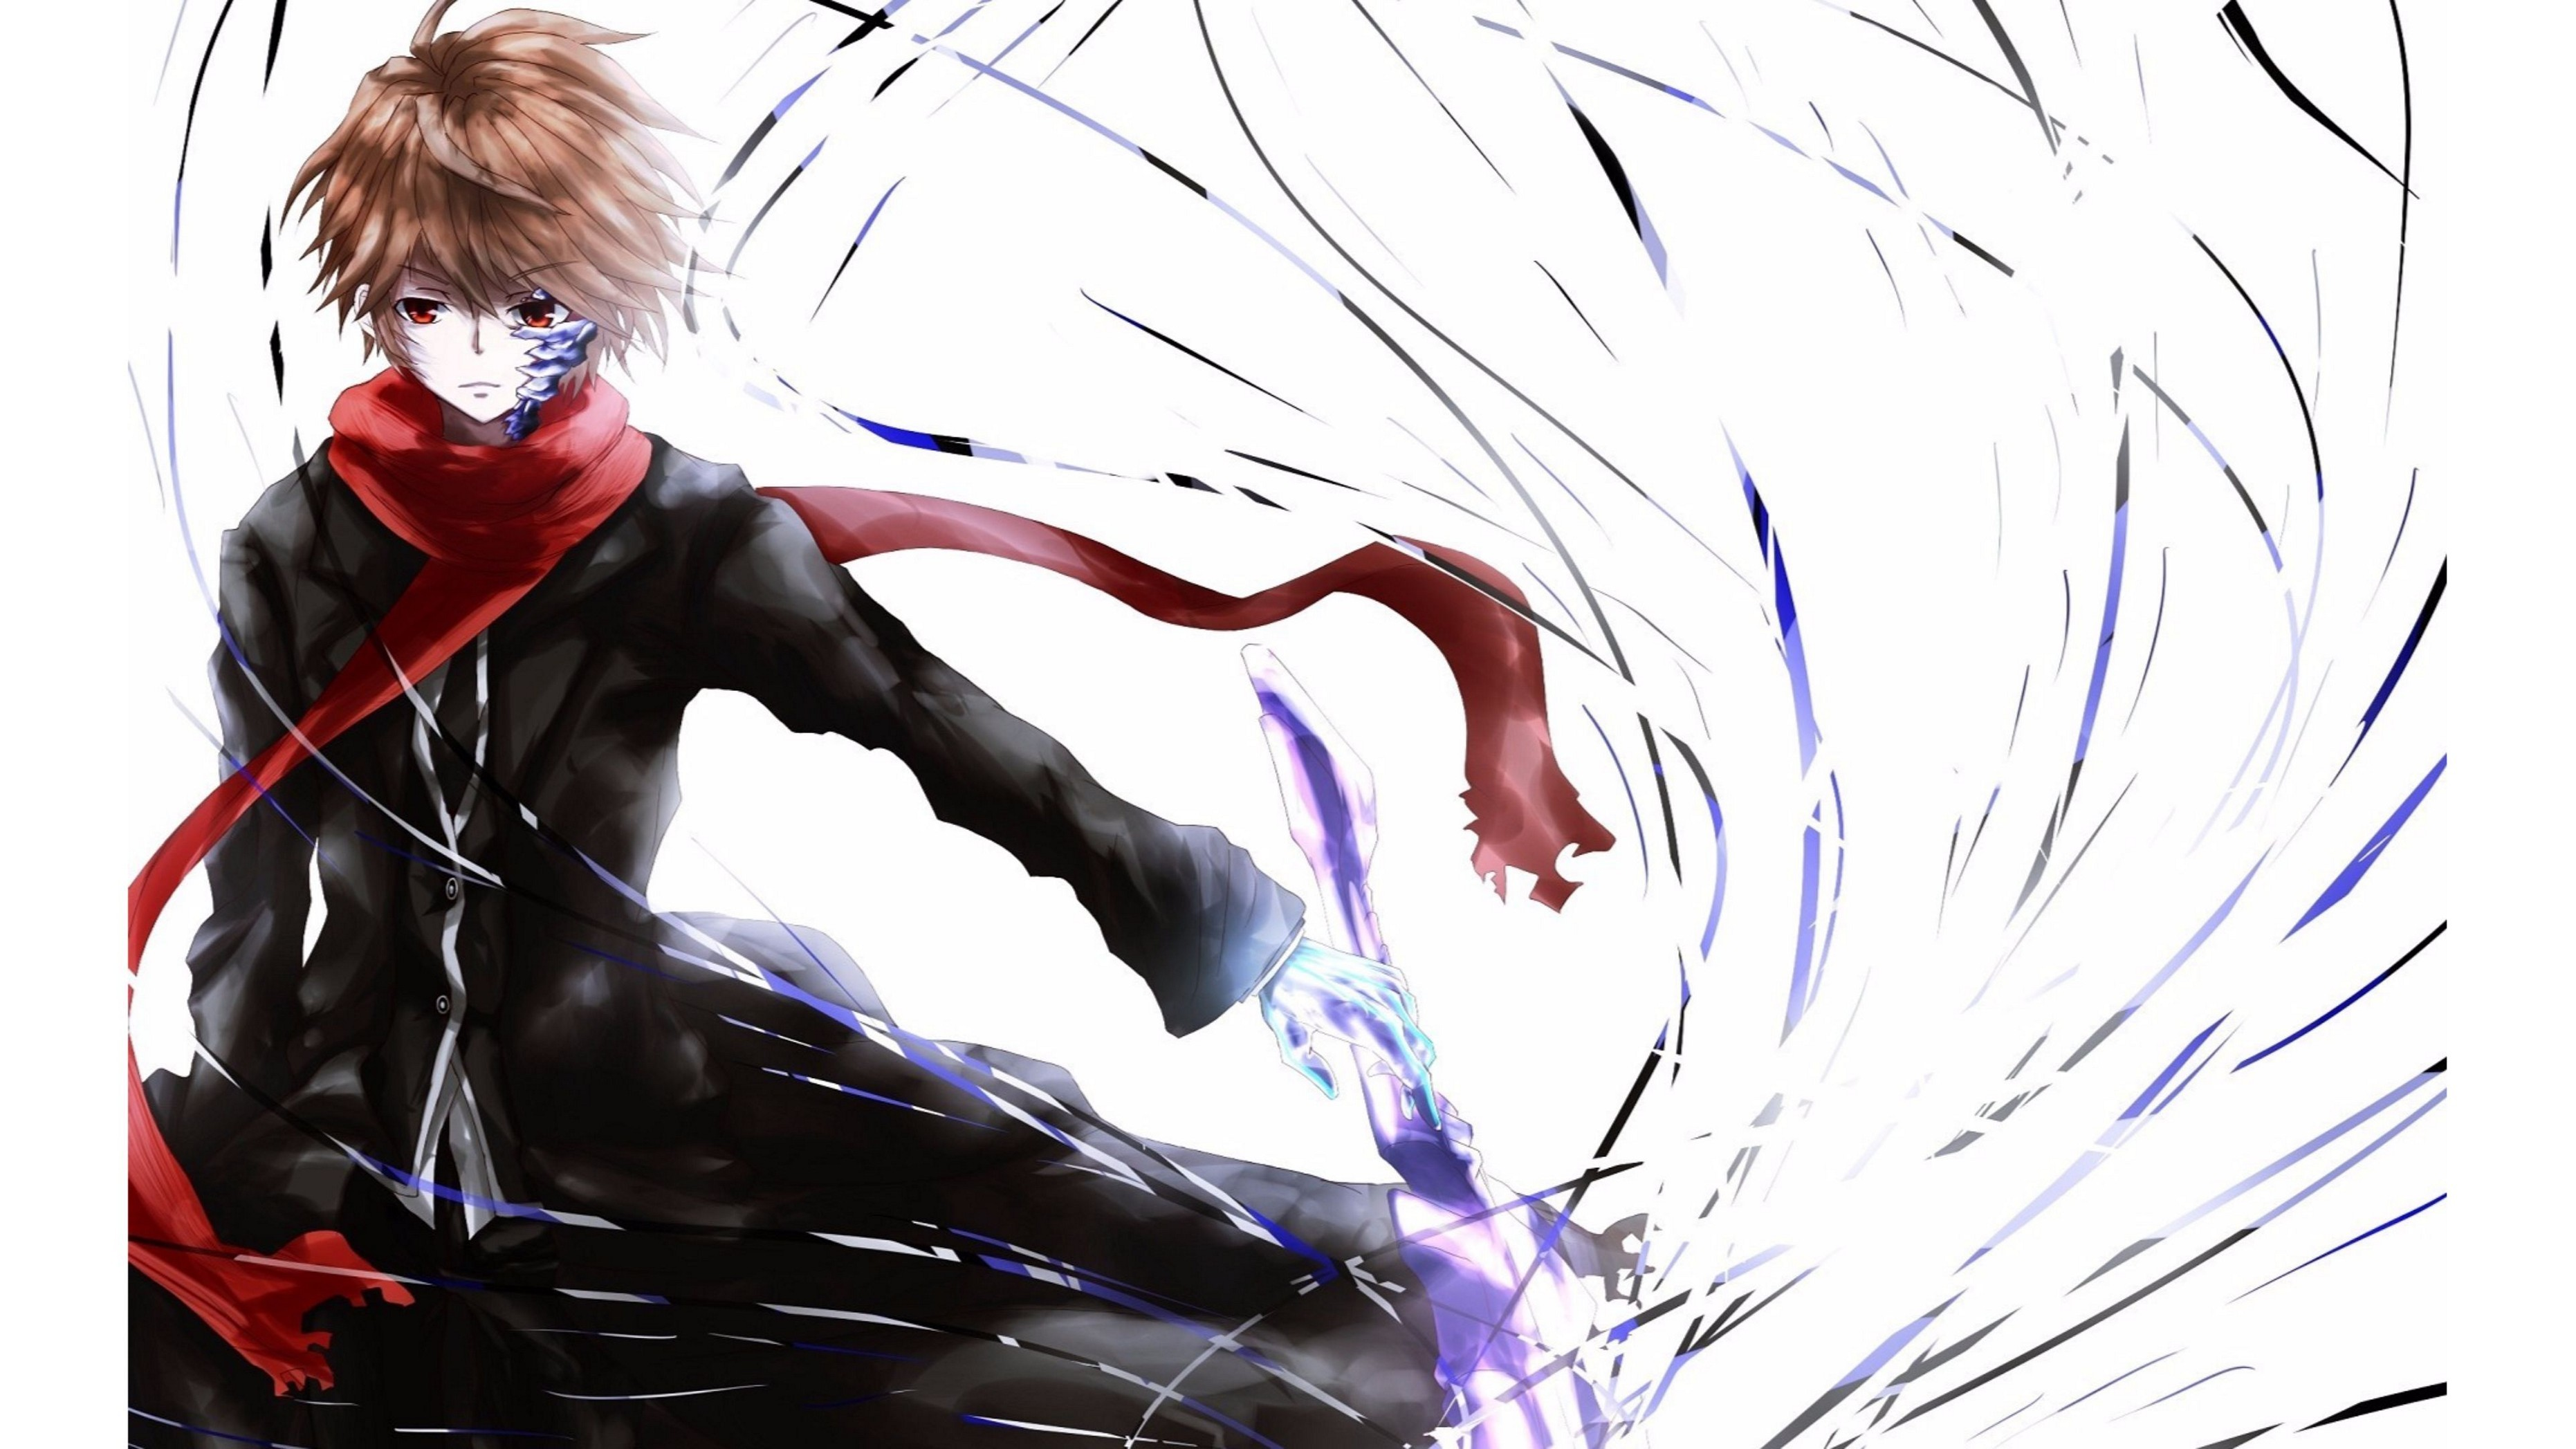 X Villan Marvelous Cool Anime Wallpaper